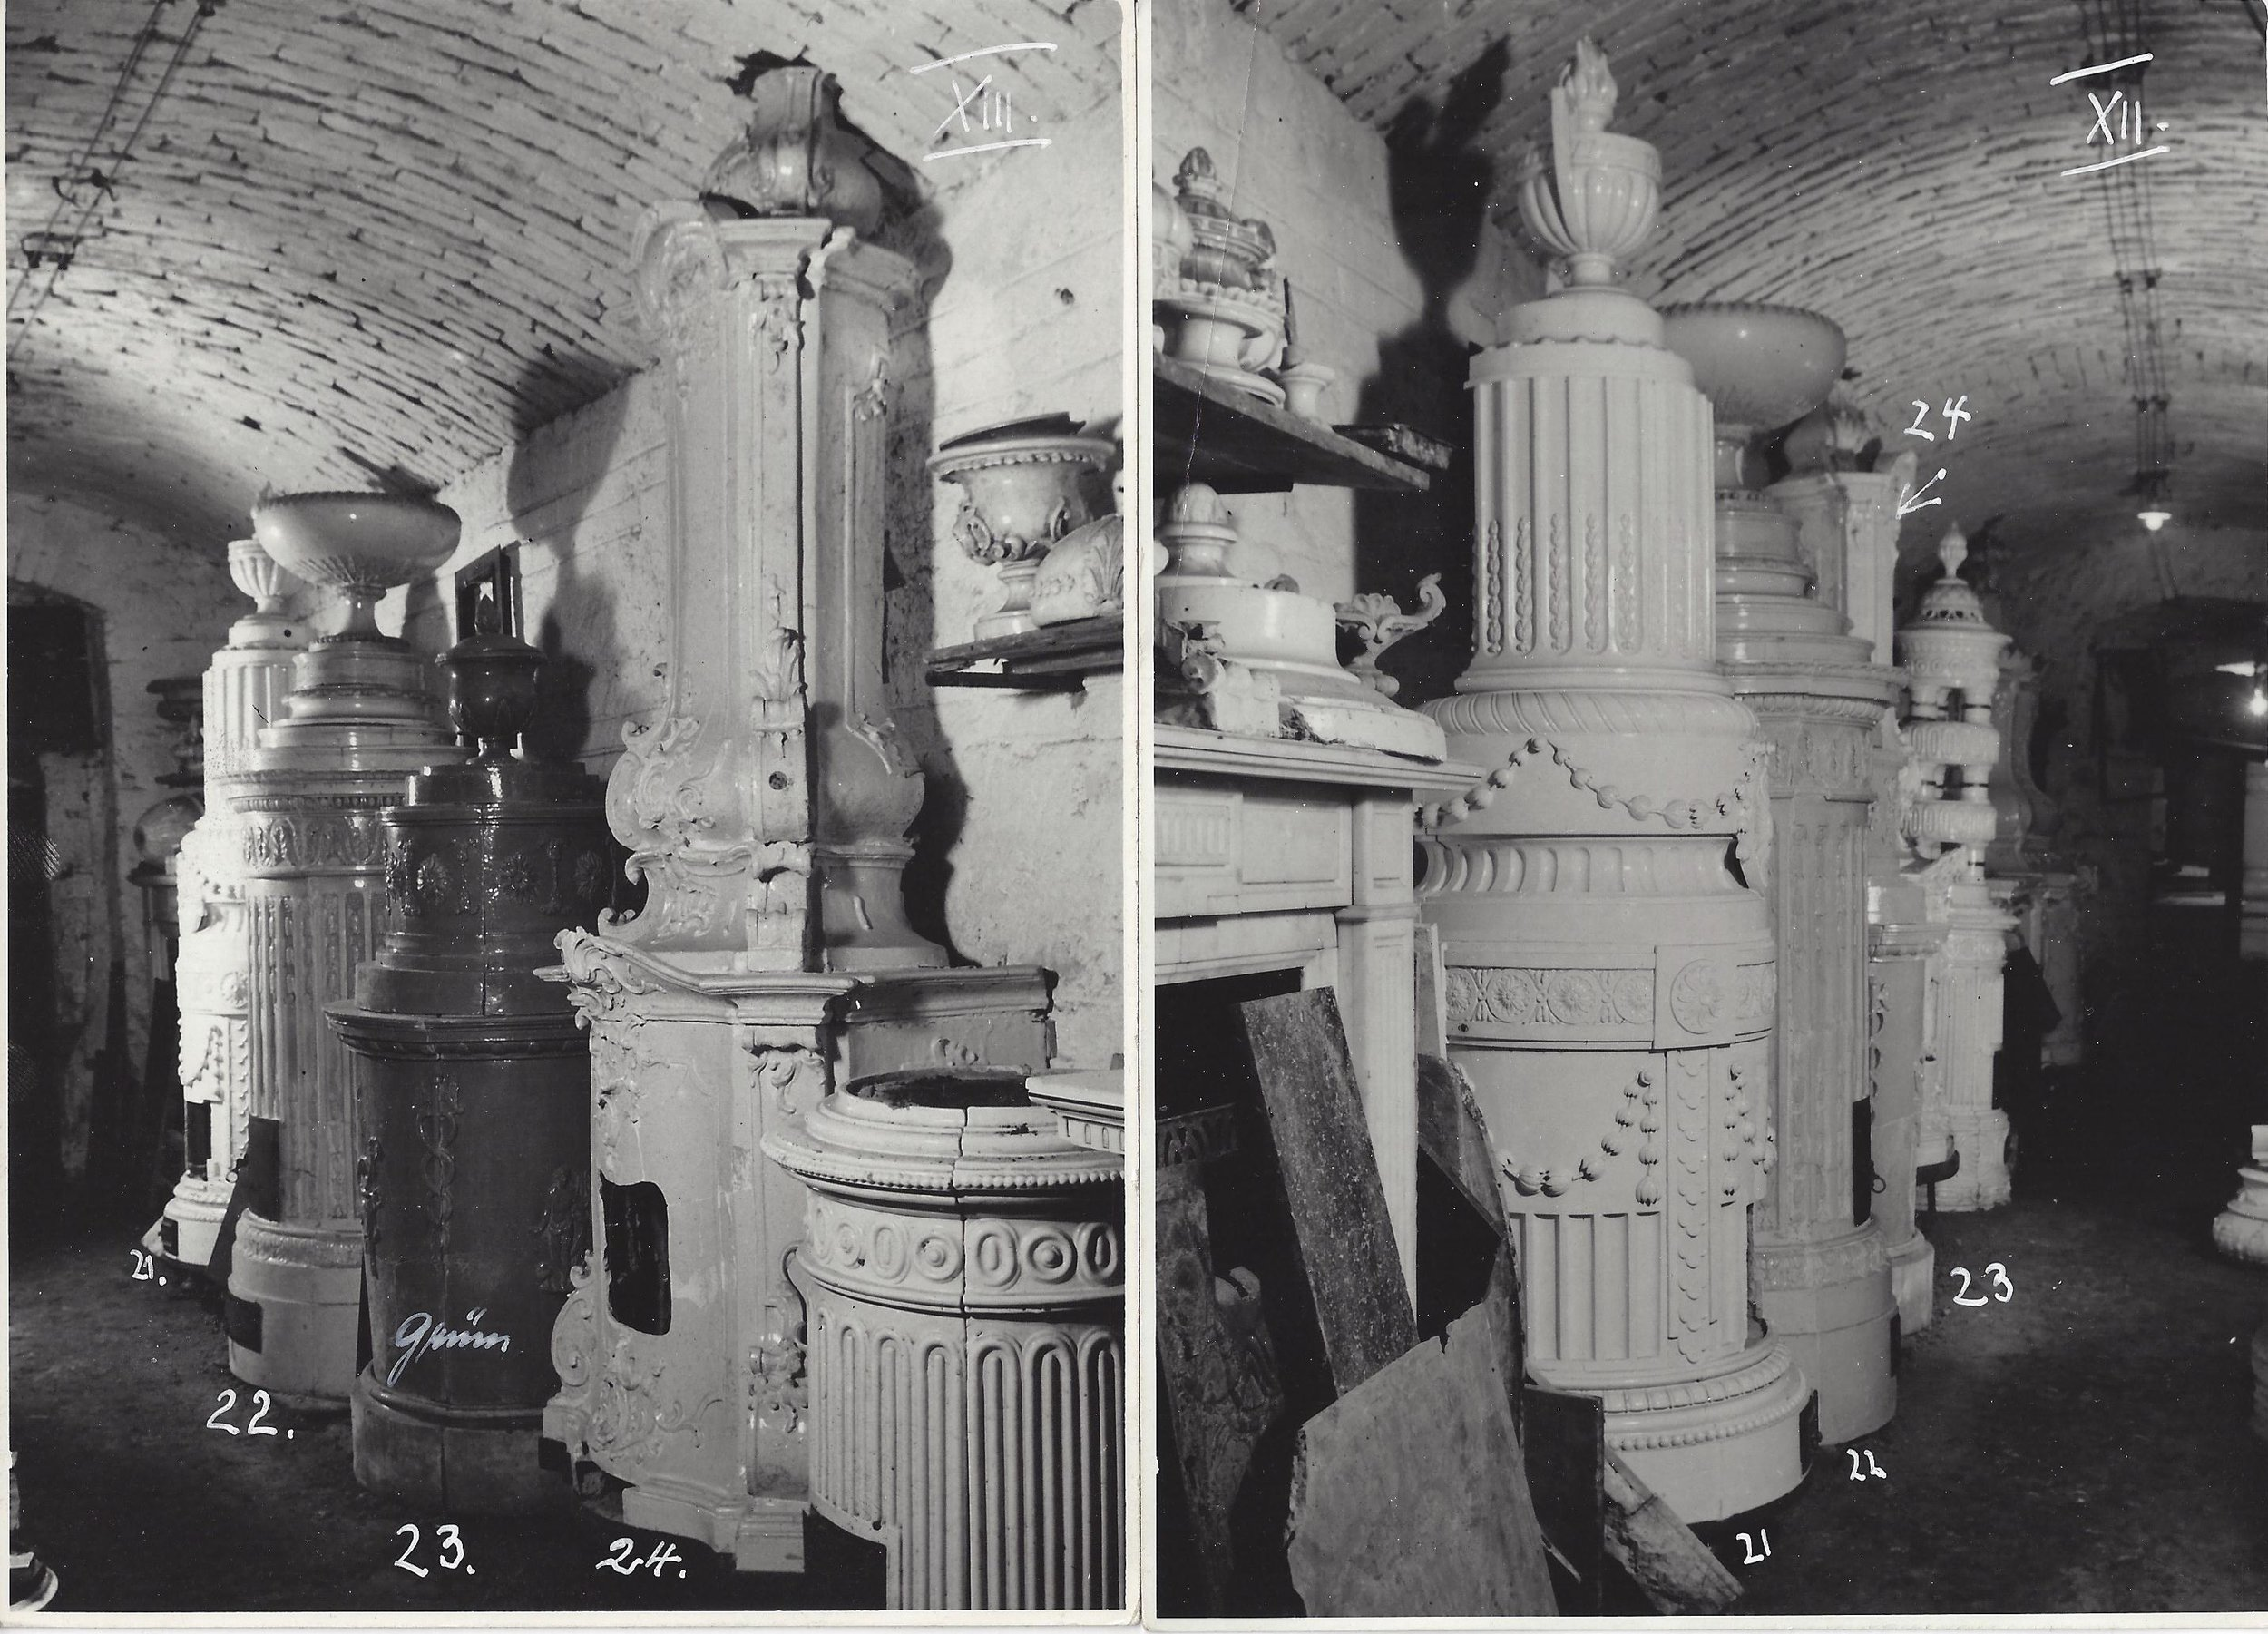 An old inventory photo of available ceramic room heaters taken by Frederick Victoria in Vienna circa 1948